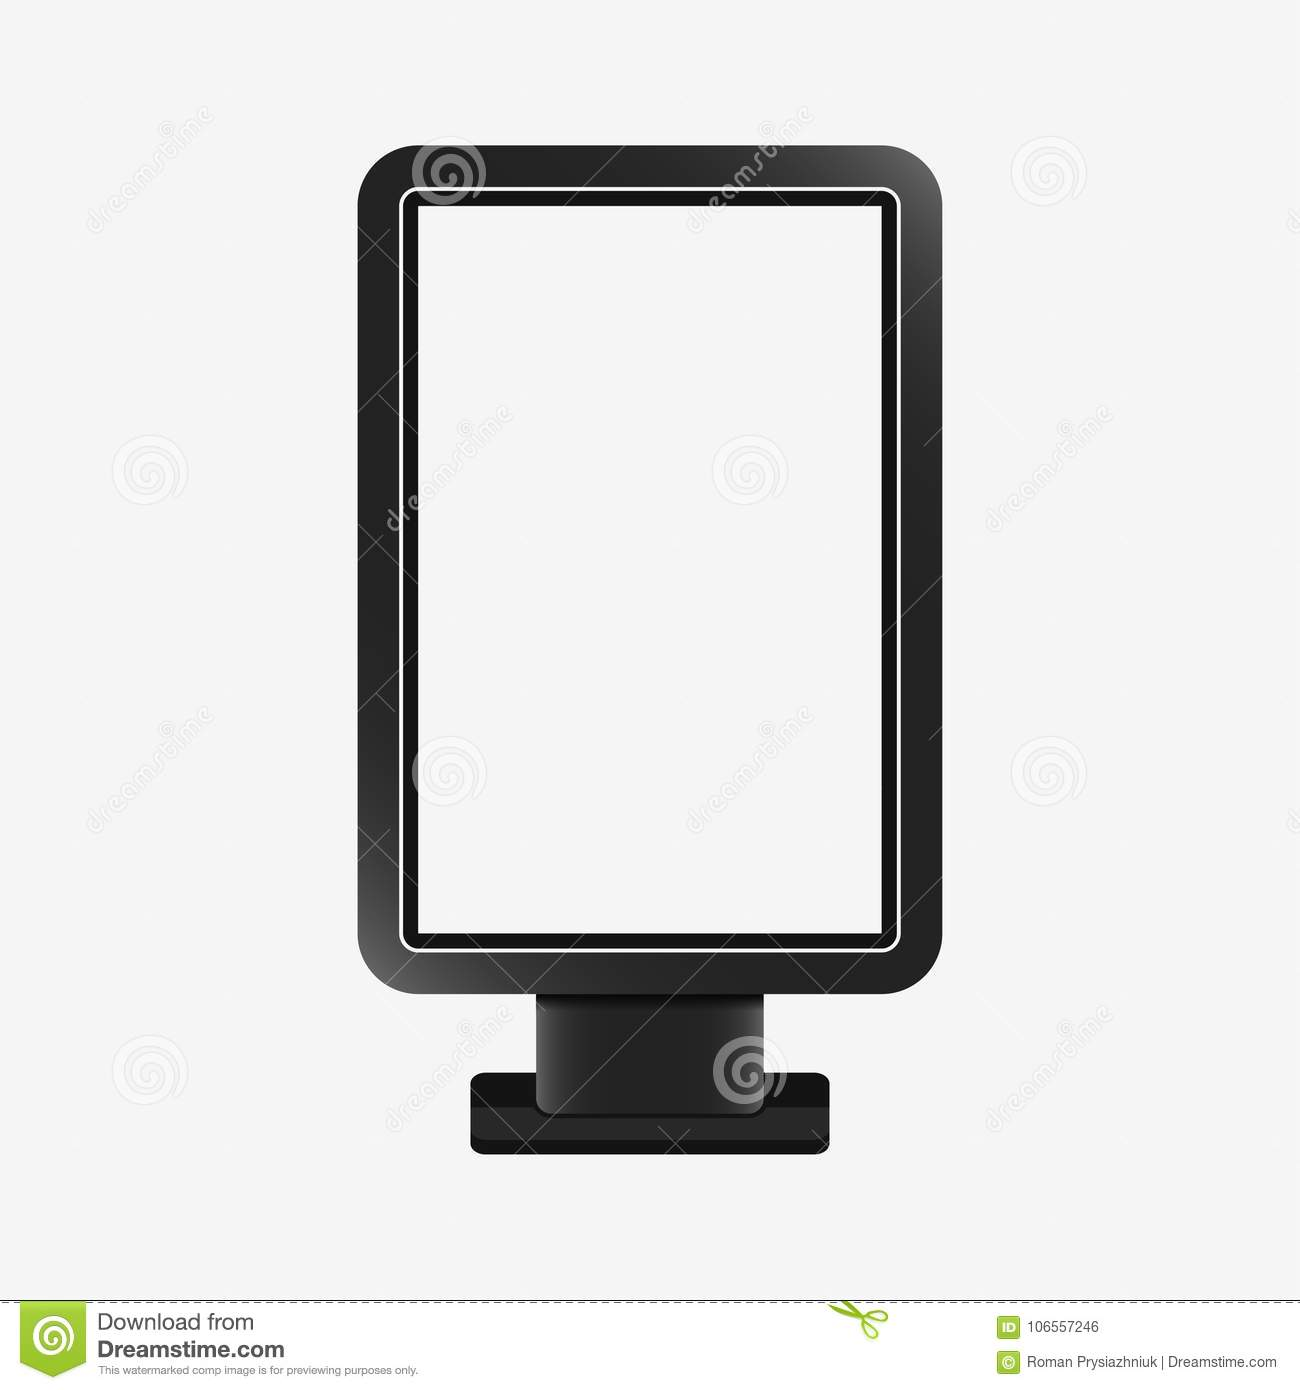 Light box - realistic mockup. Blank template of citylight. Outdoor advertising stand board, vertical billboard. Vector.